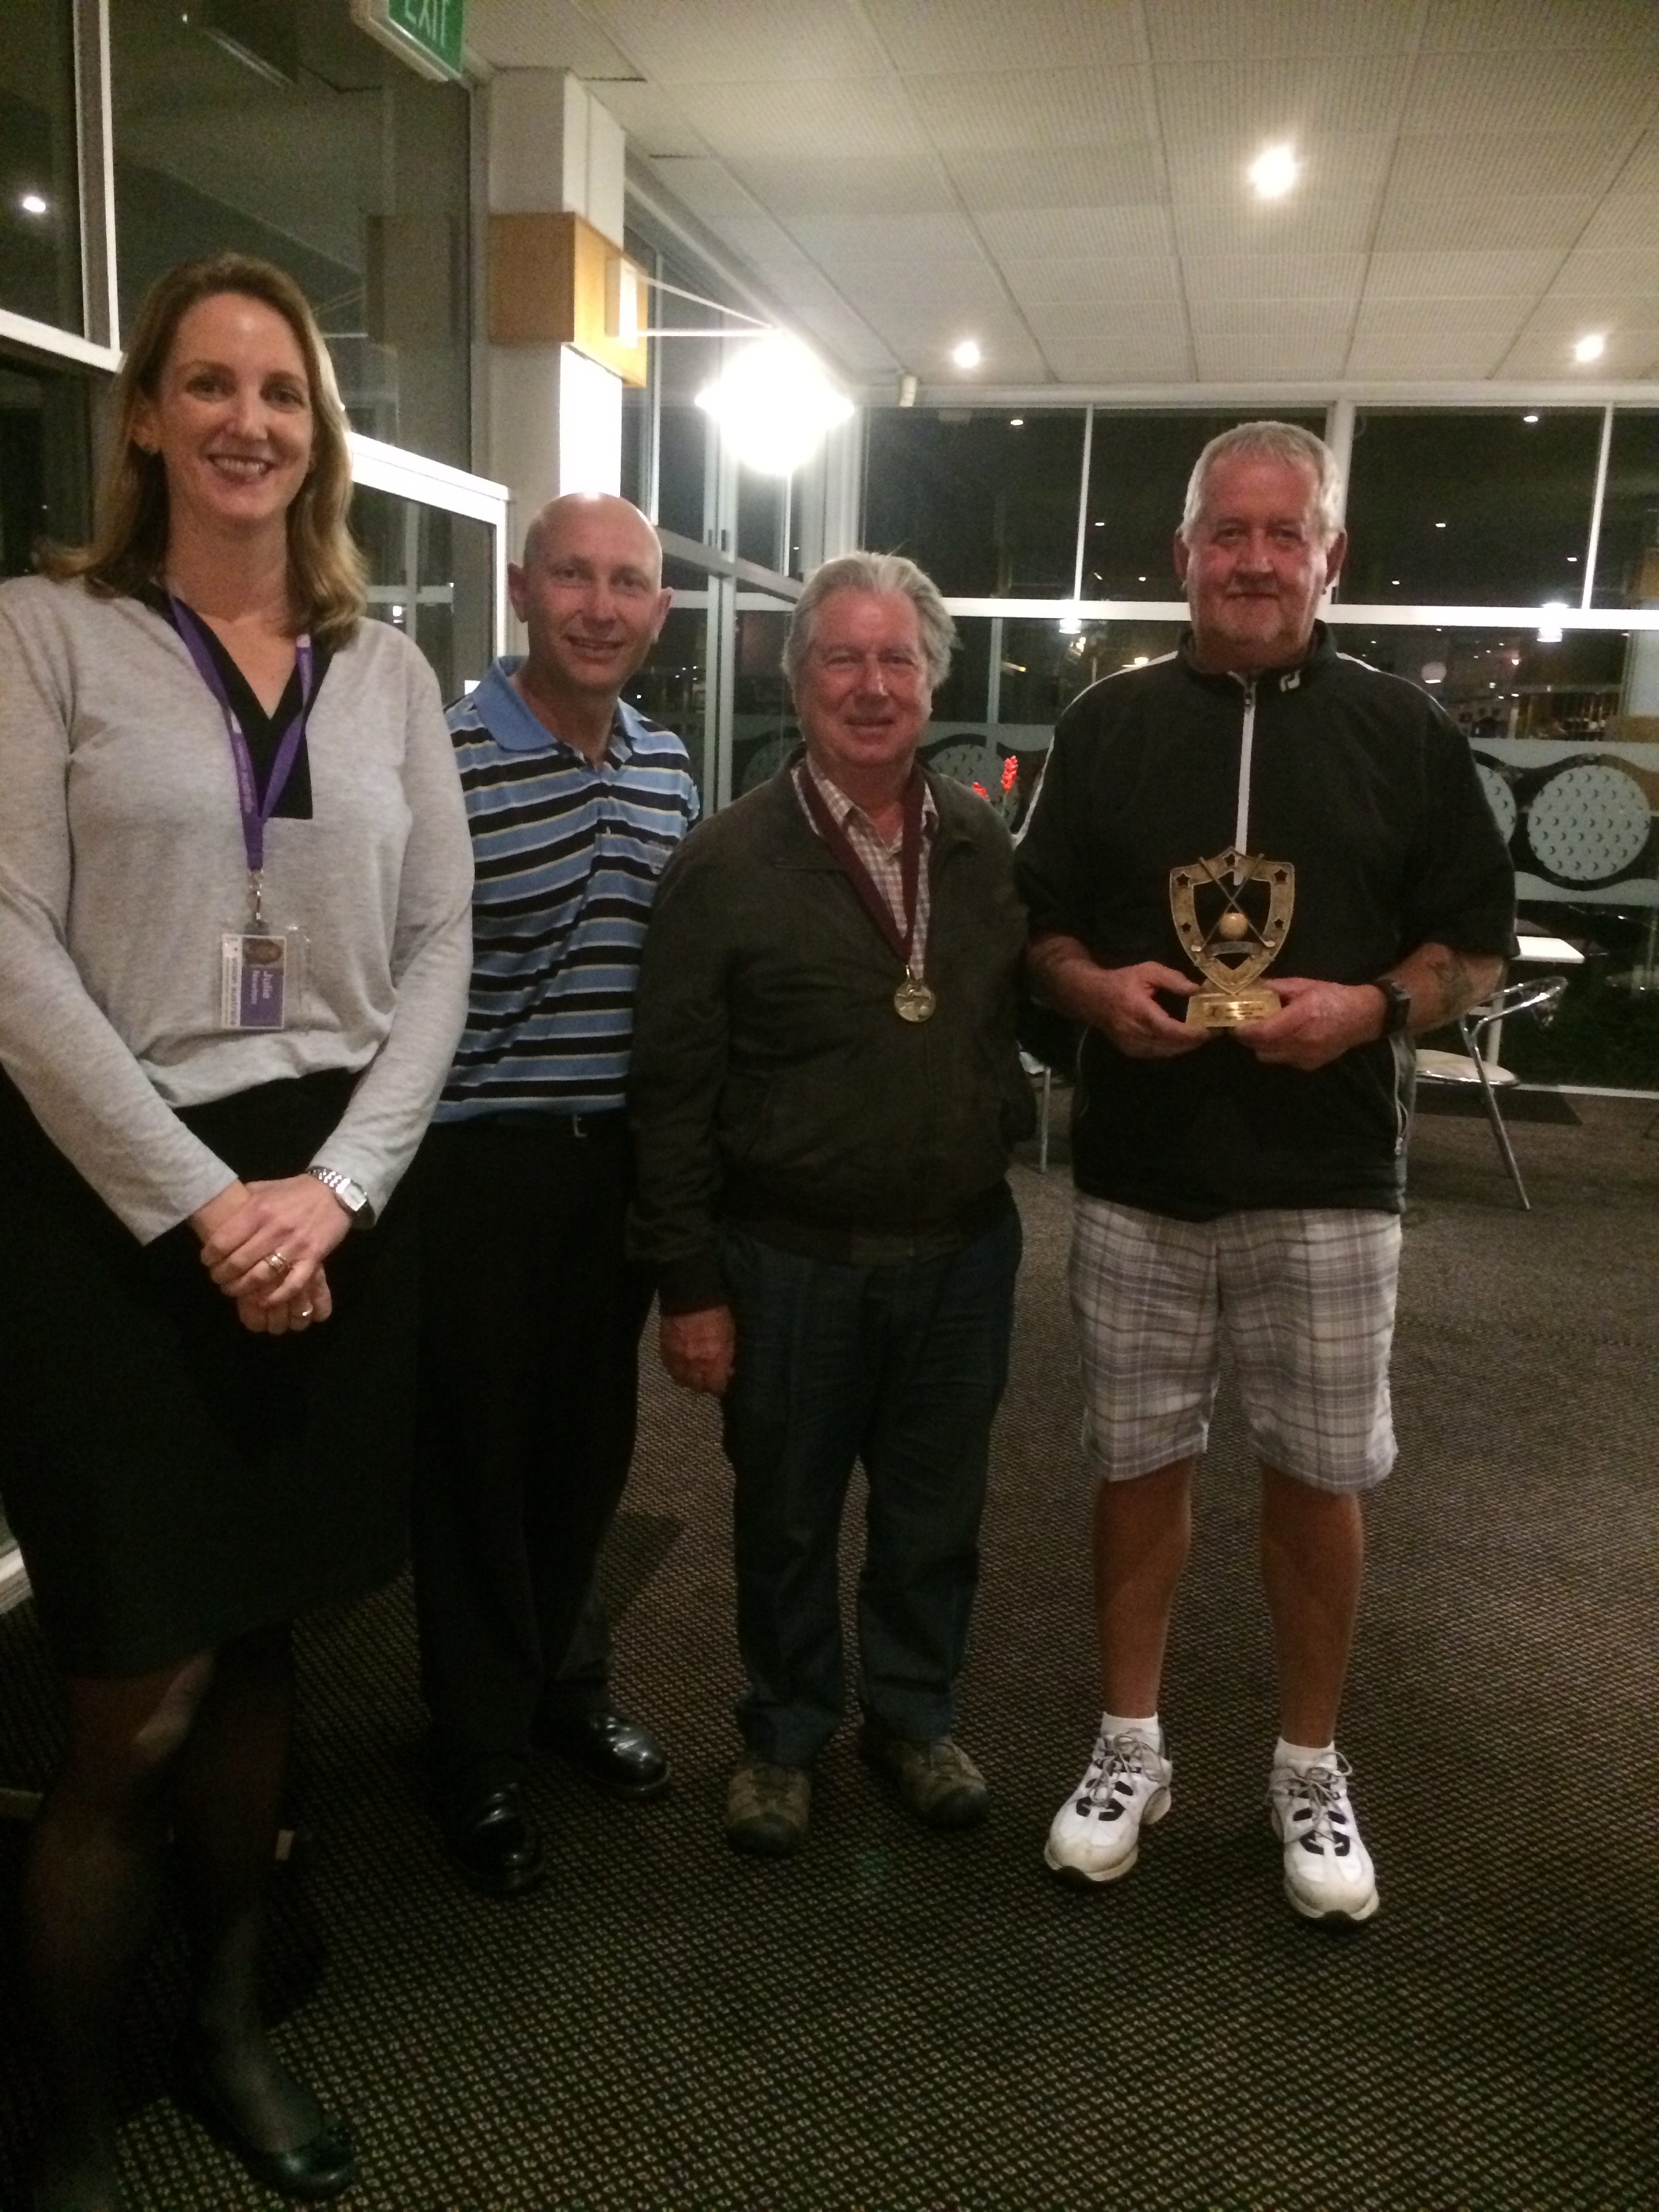 Inaugural Queensland Open Champion Stephen Mitchell pictured with his caddy Robin Bechly, Julie Newton Vision Australia and Andrew Halliday Virginia Golf Club.